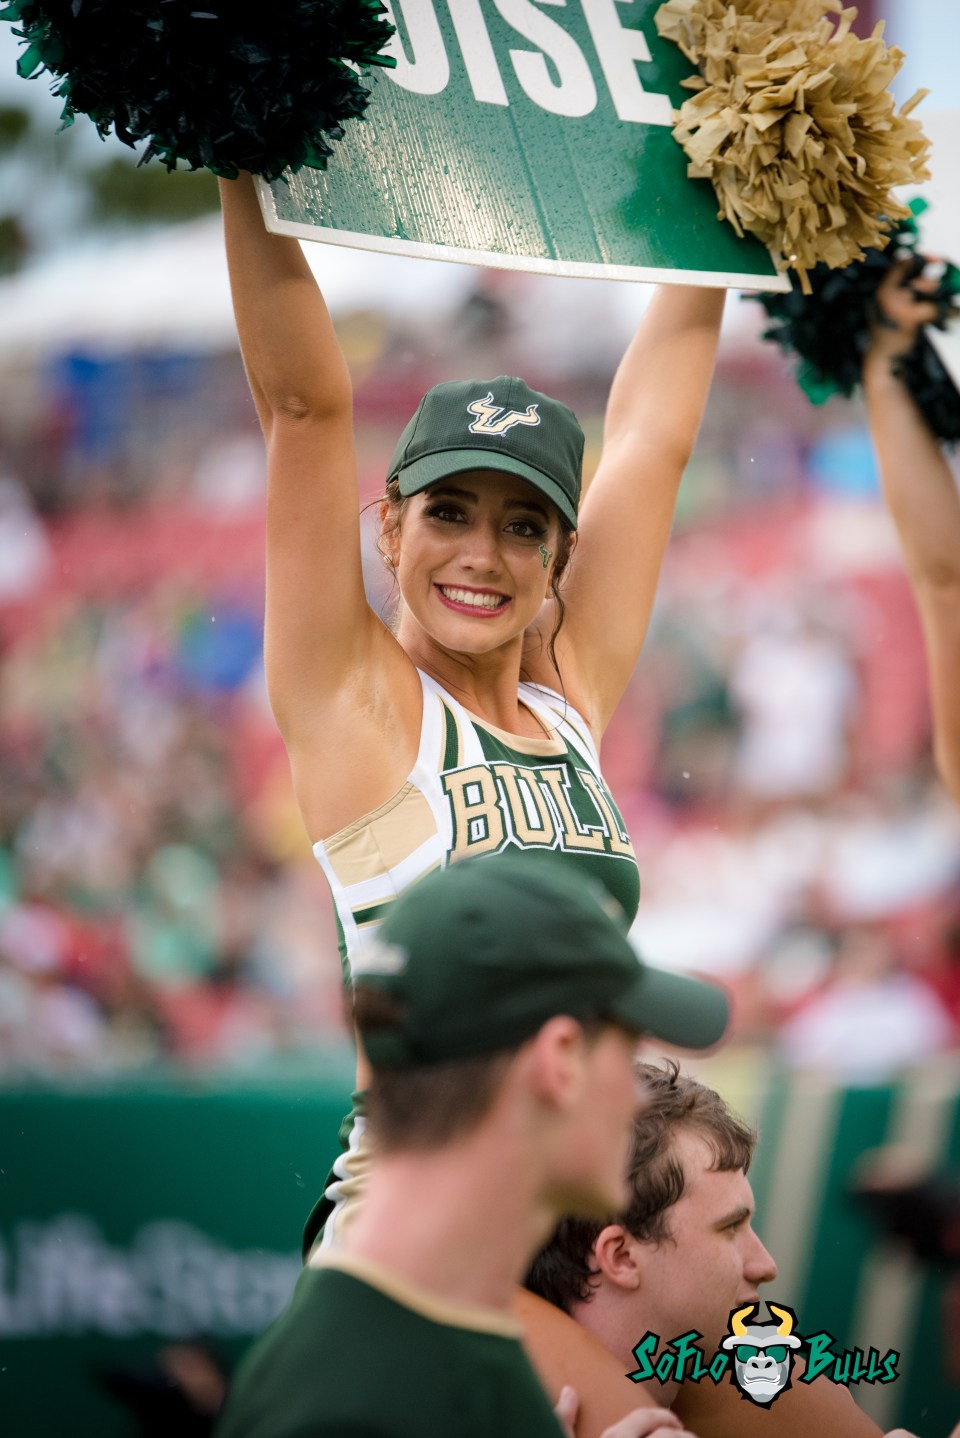 44 - Stony Brook vs. USF 2017 - USF Cheerleader by Dennis Akers | SoFloBulls.com (4016x6016)